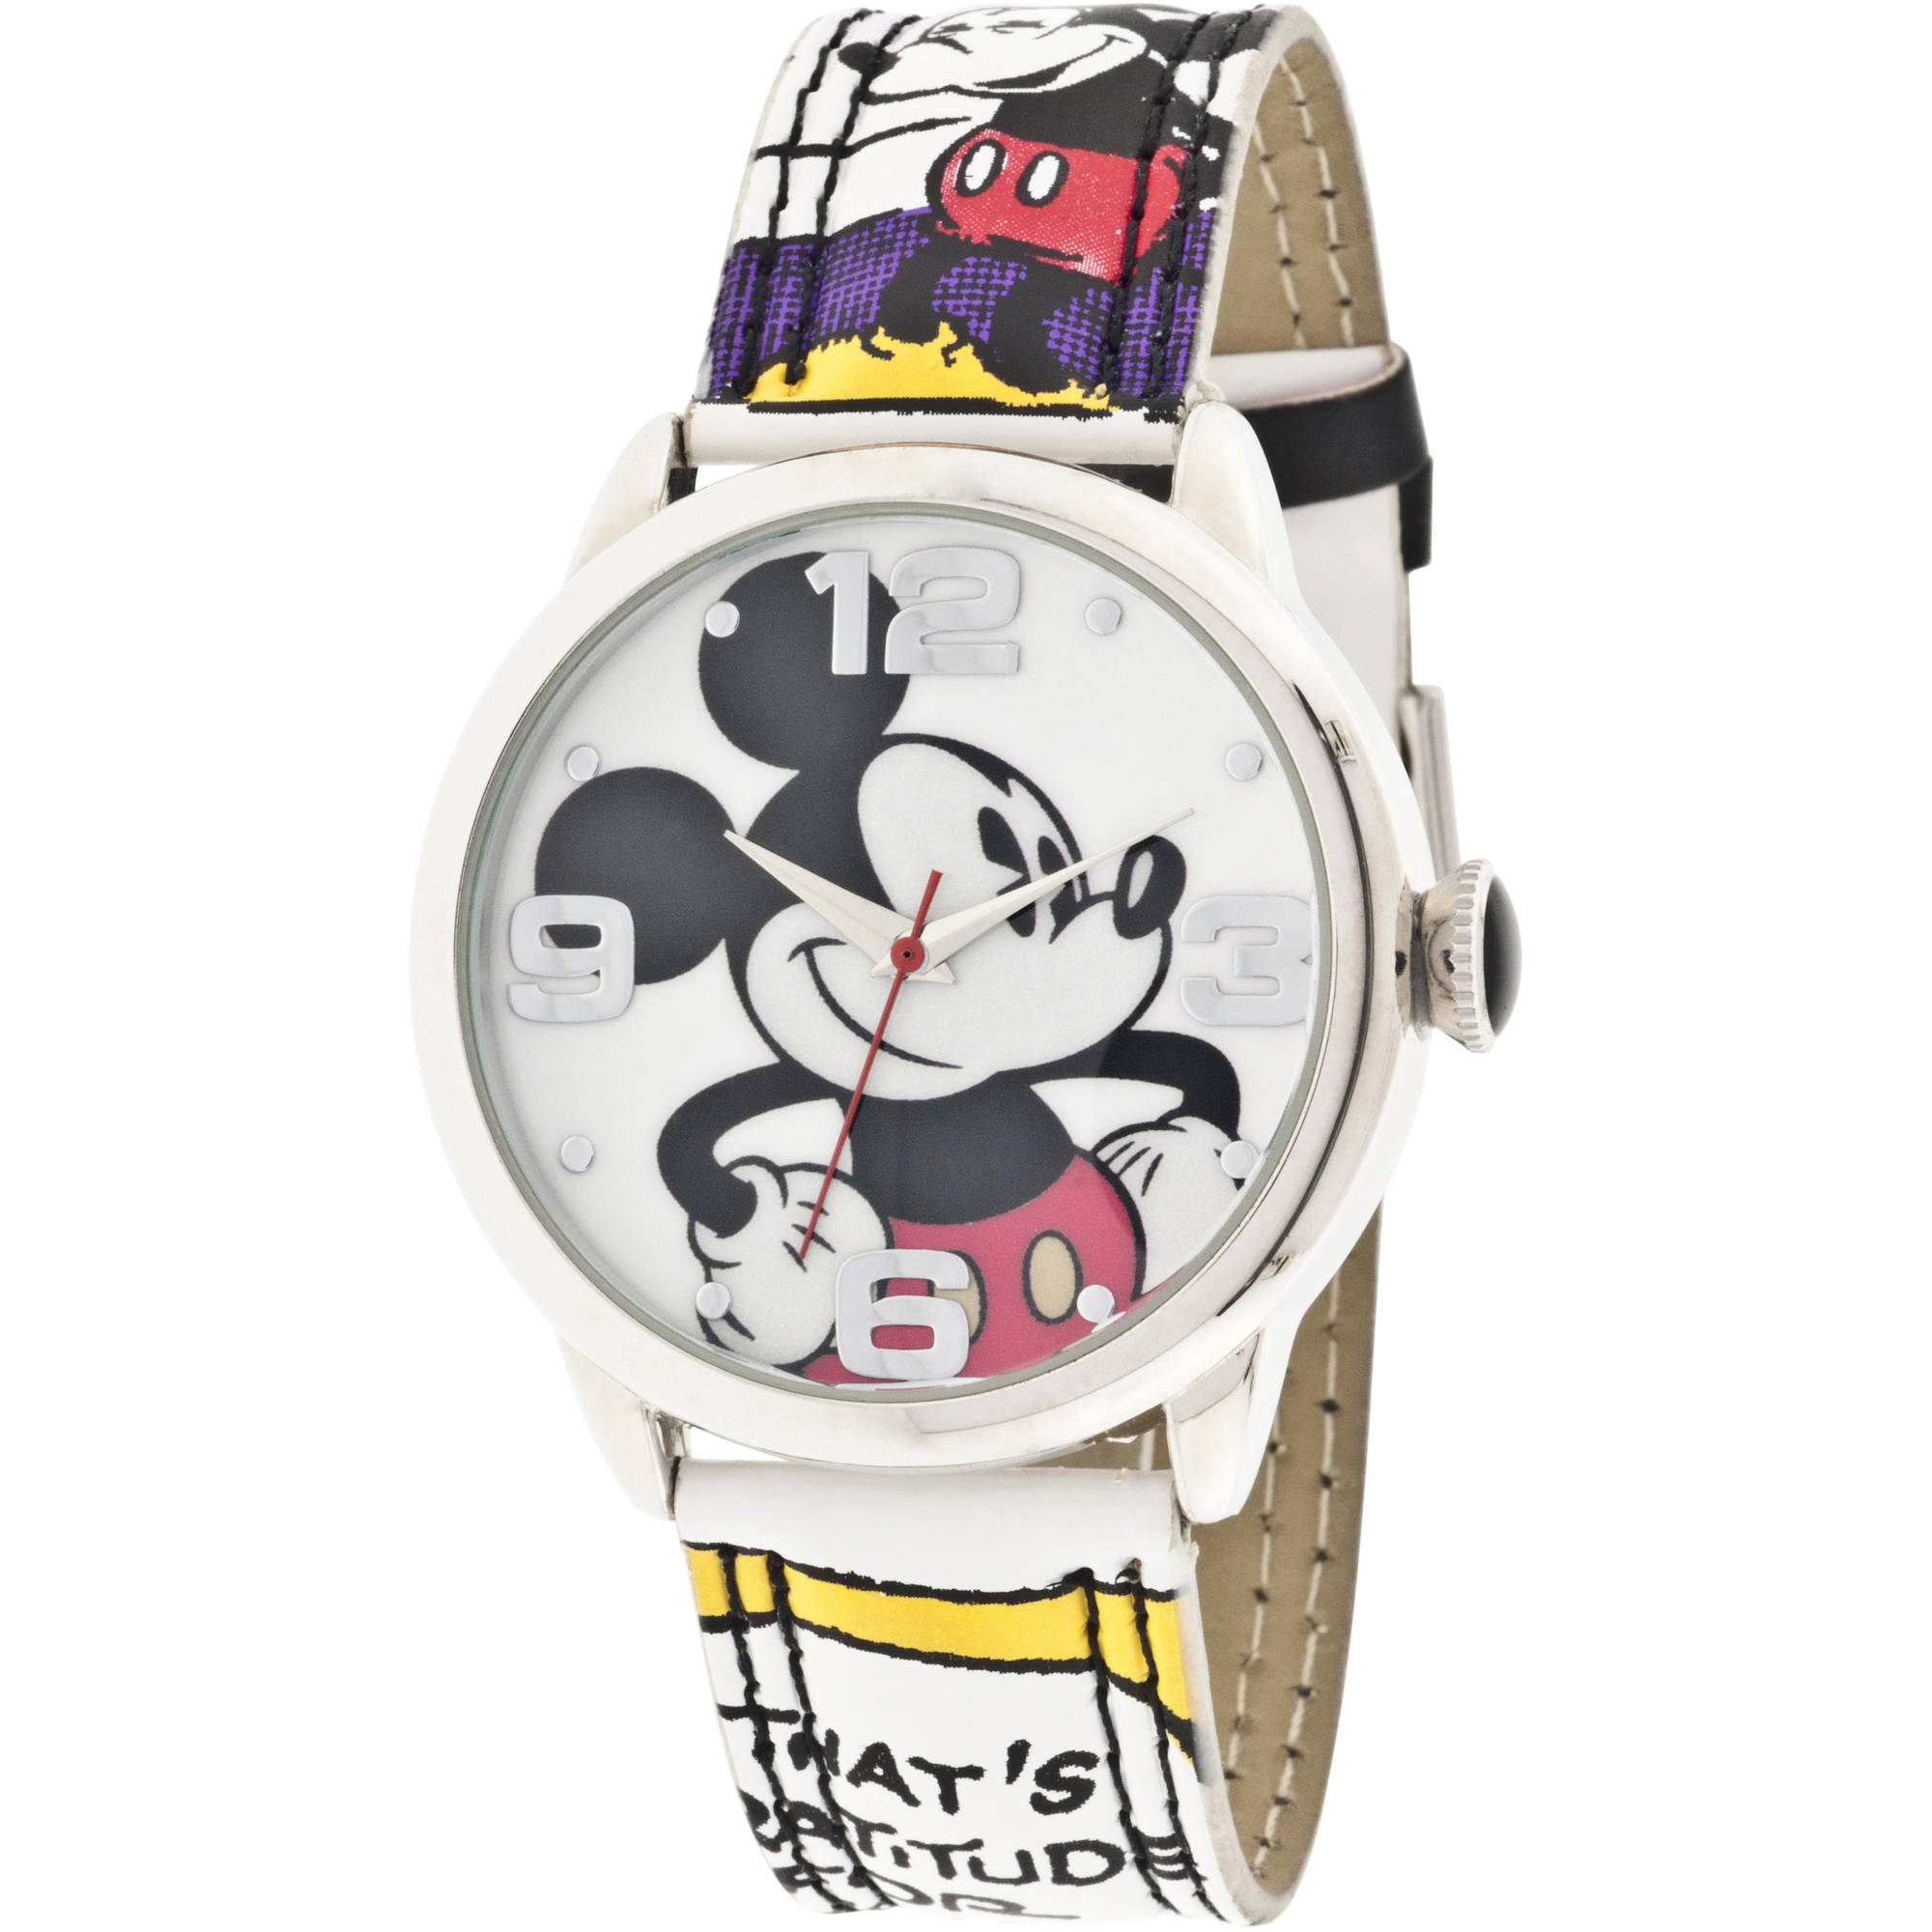 Mickey Mouse Silver Metal Case Character-Printed Dial Analog Watch, Mickey Mouse Comic Strip Printed Strap